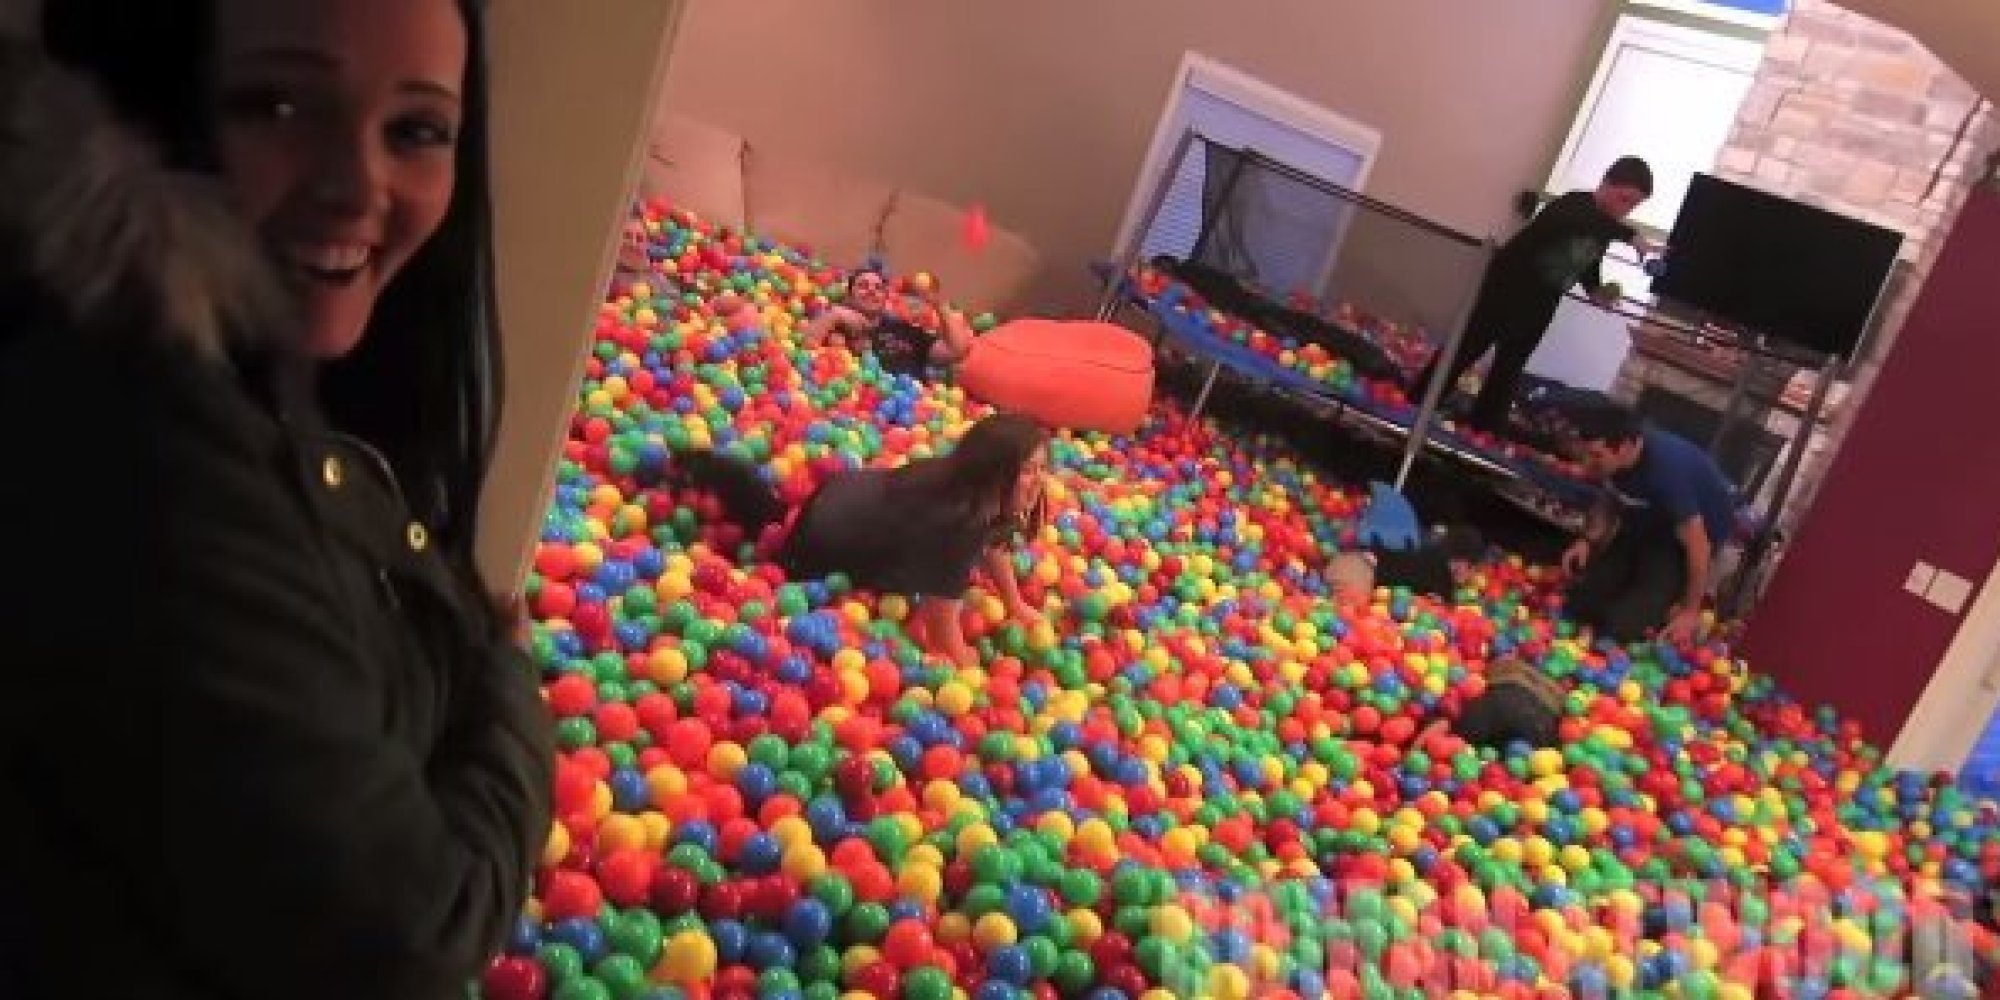 Ball Pit Living Room Prank May Be The Best Idea In History ...